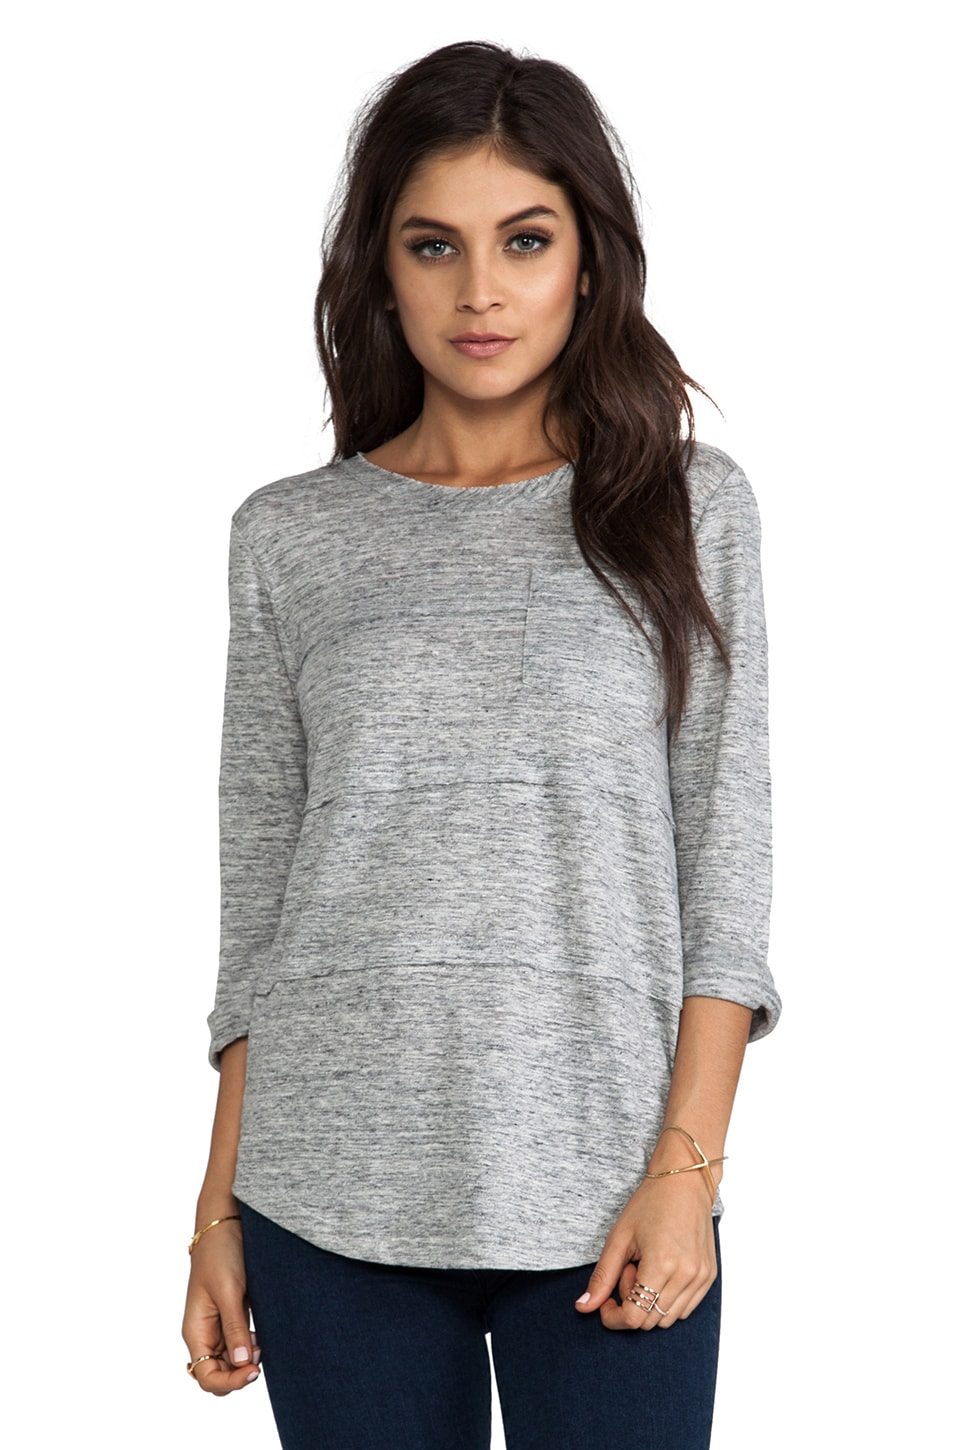 Marc by Marc Jacobs Carmen Tee in Grey